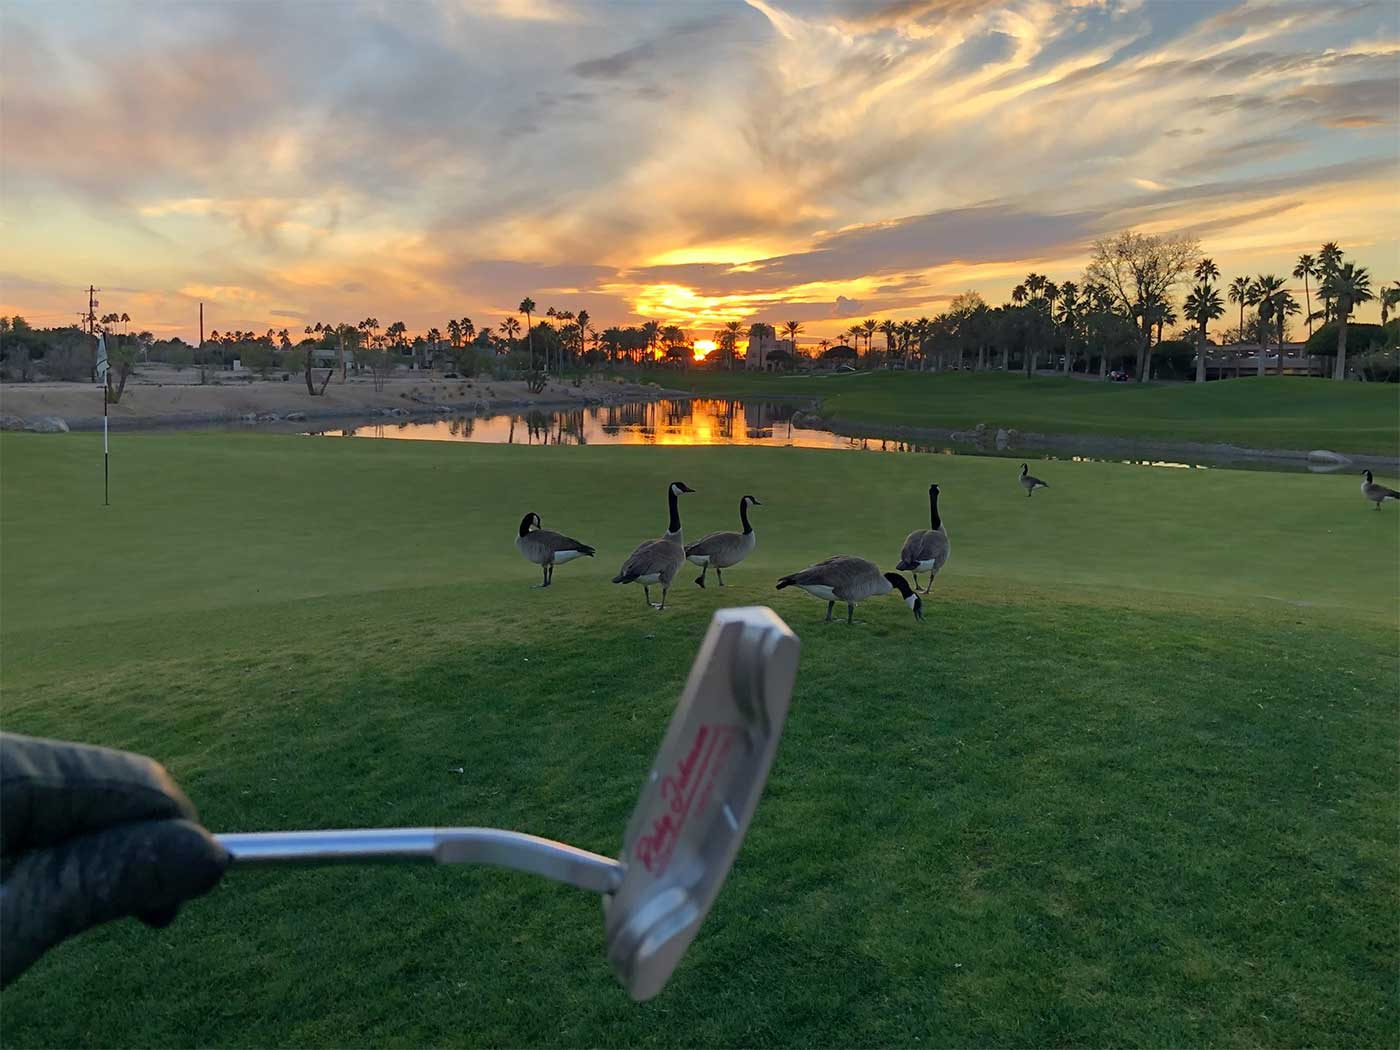 geese walk on The Phoenician Golf Course early in the morning